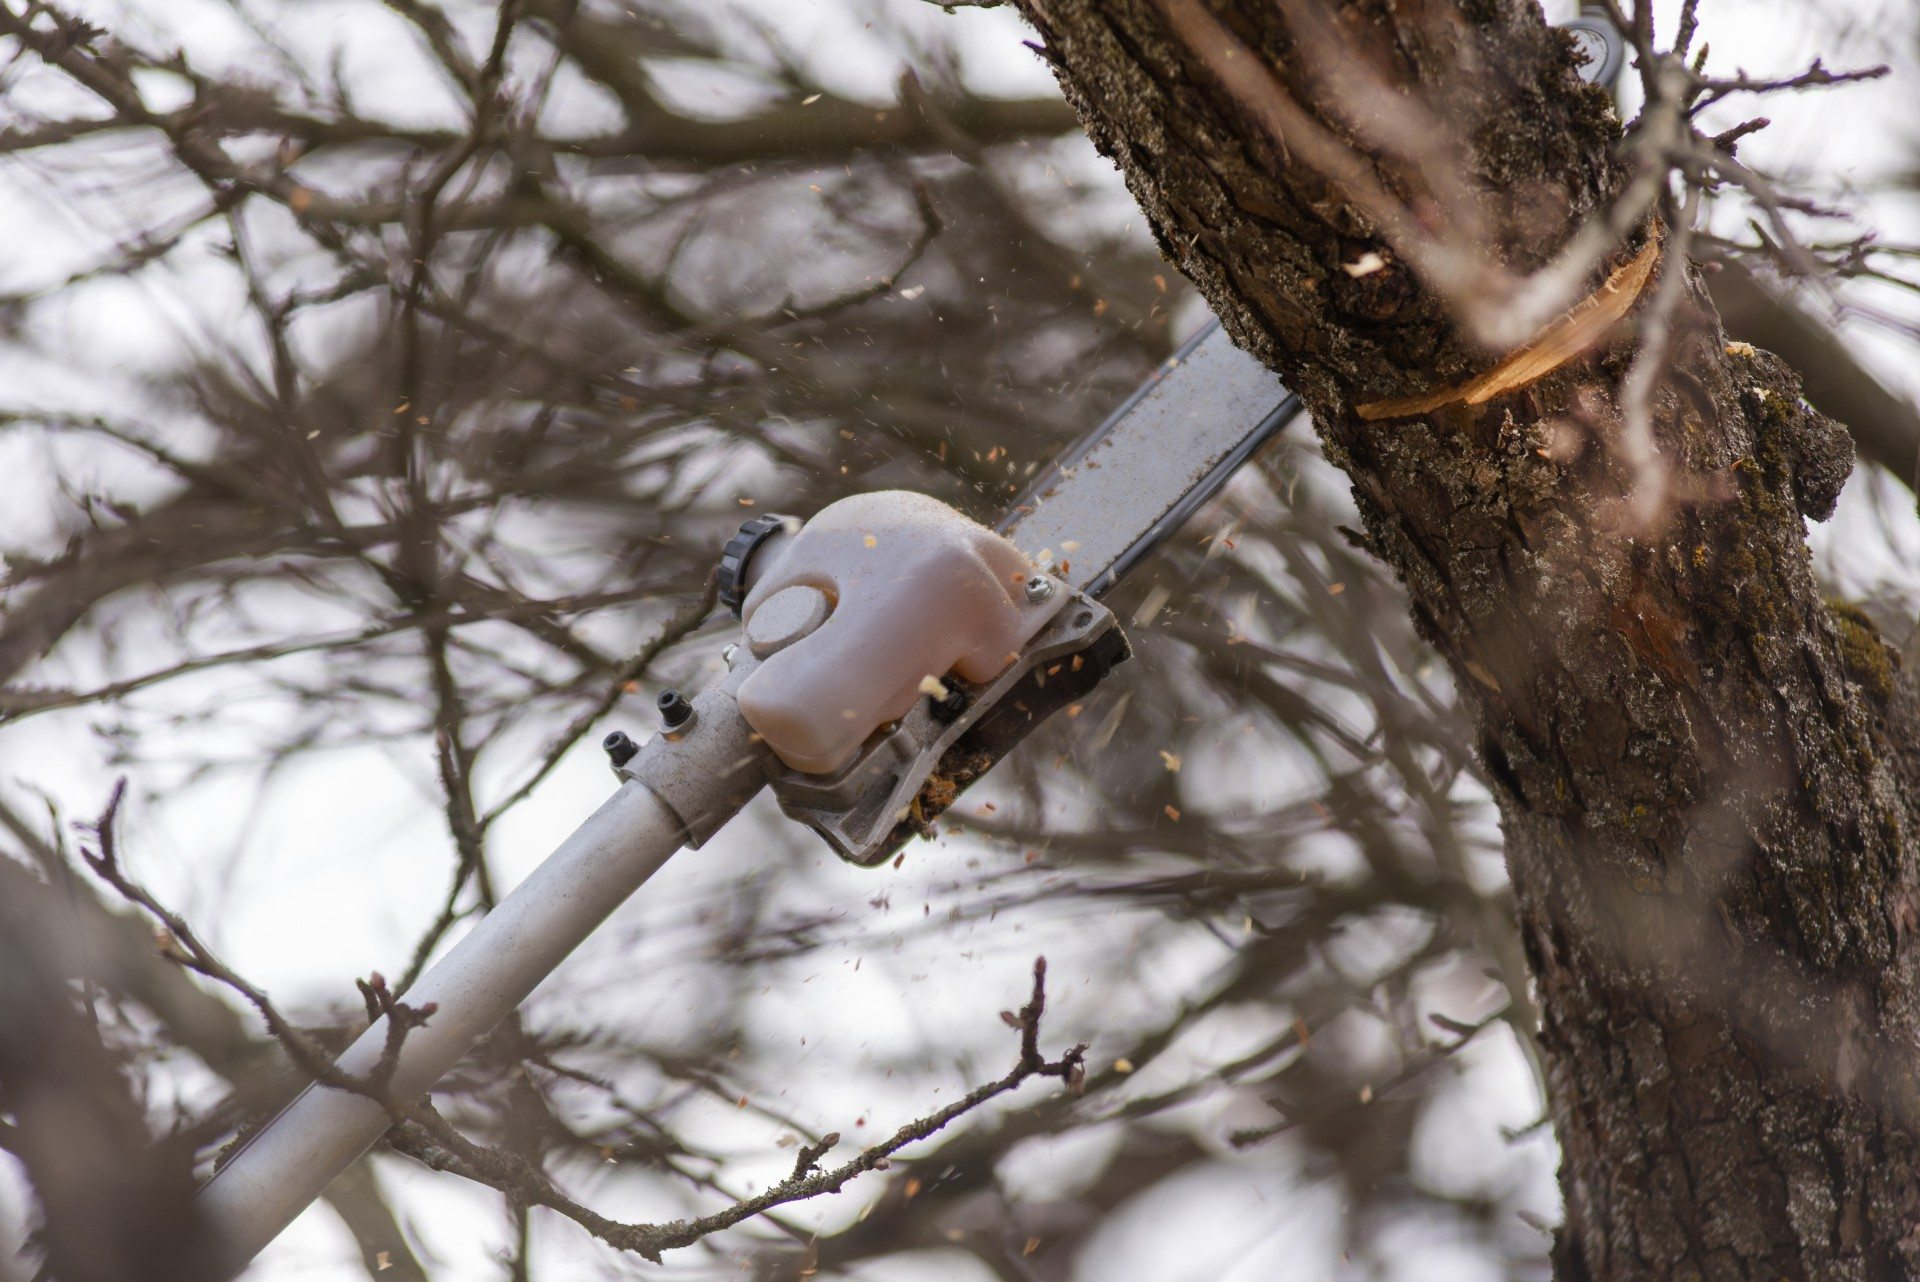 tree-pruning-tools